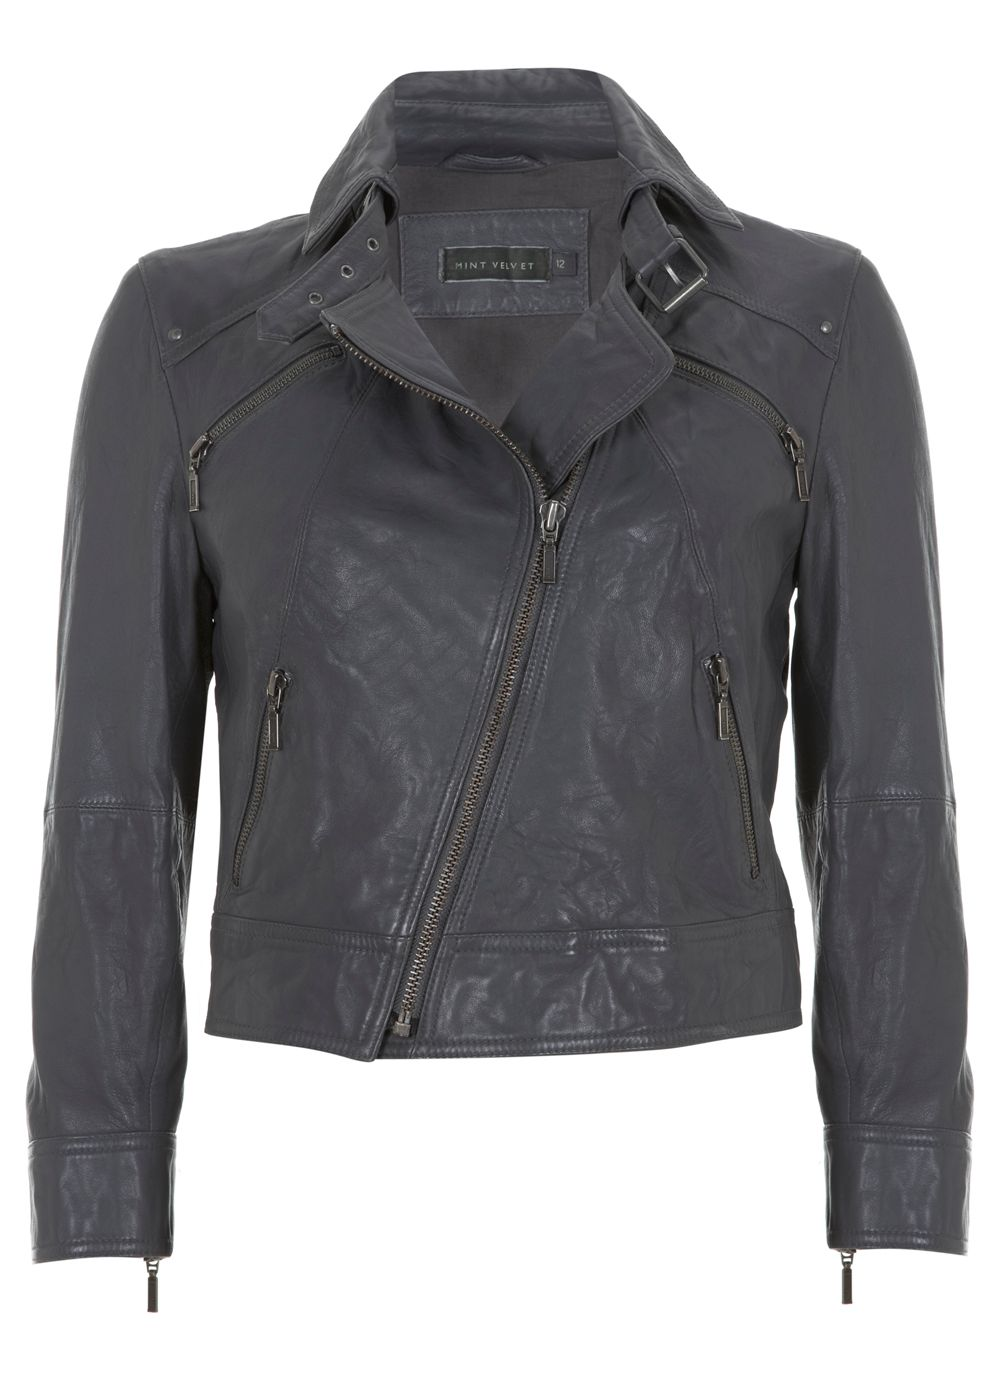 Storm cropped leather jacket